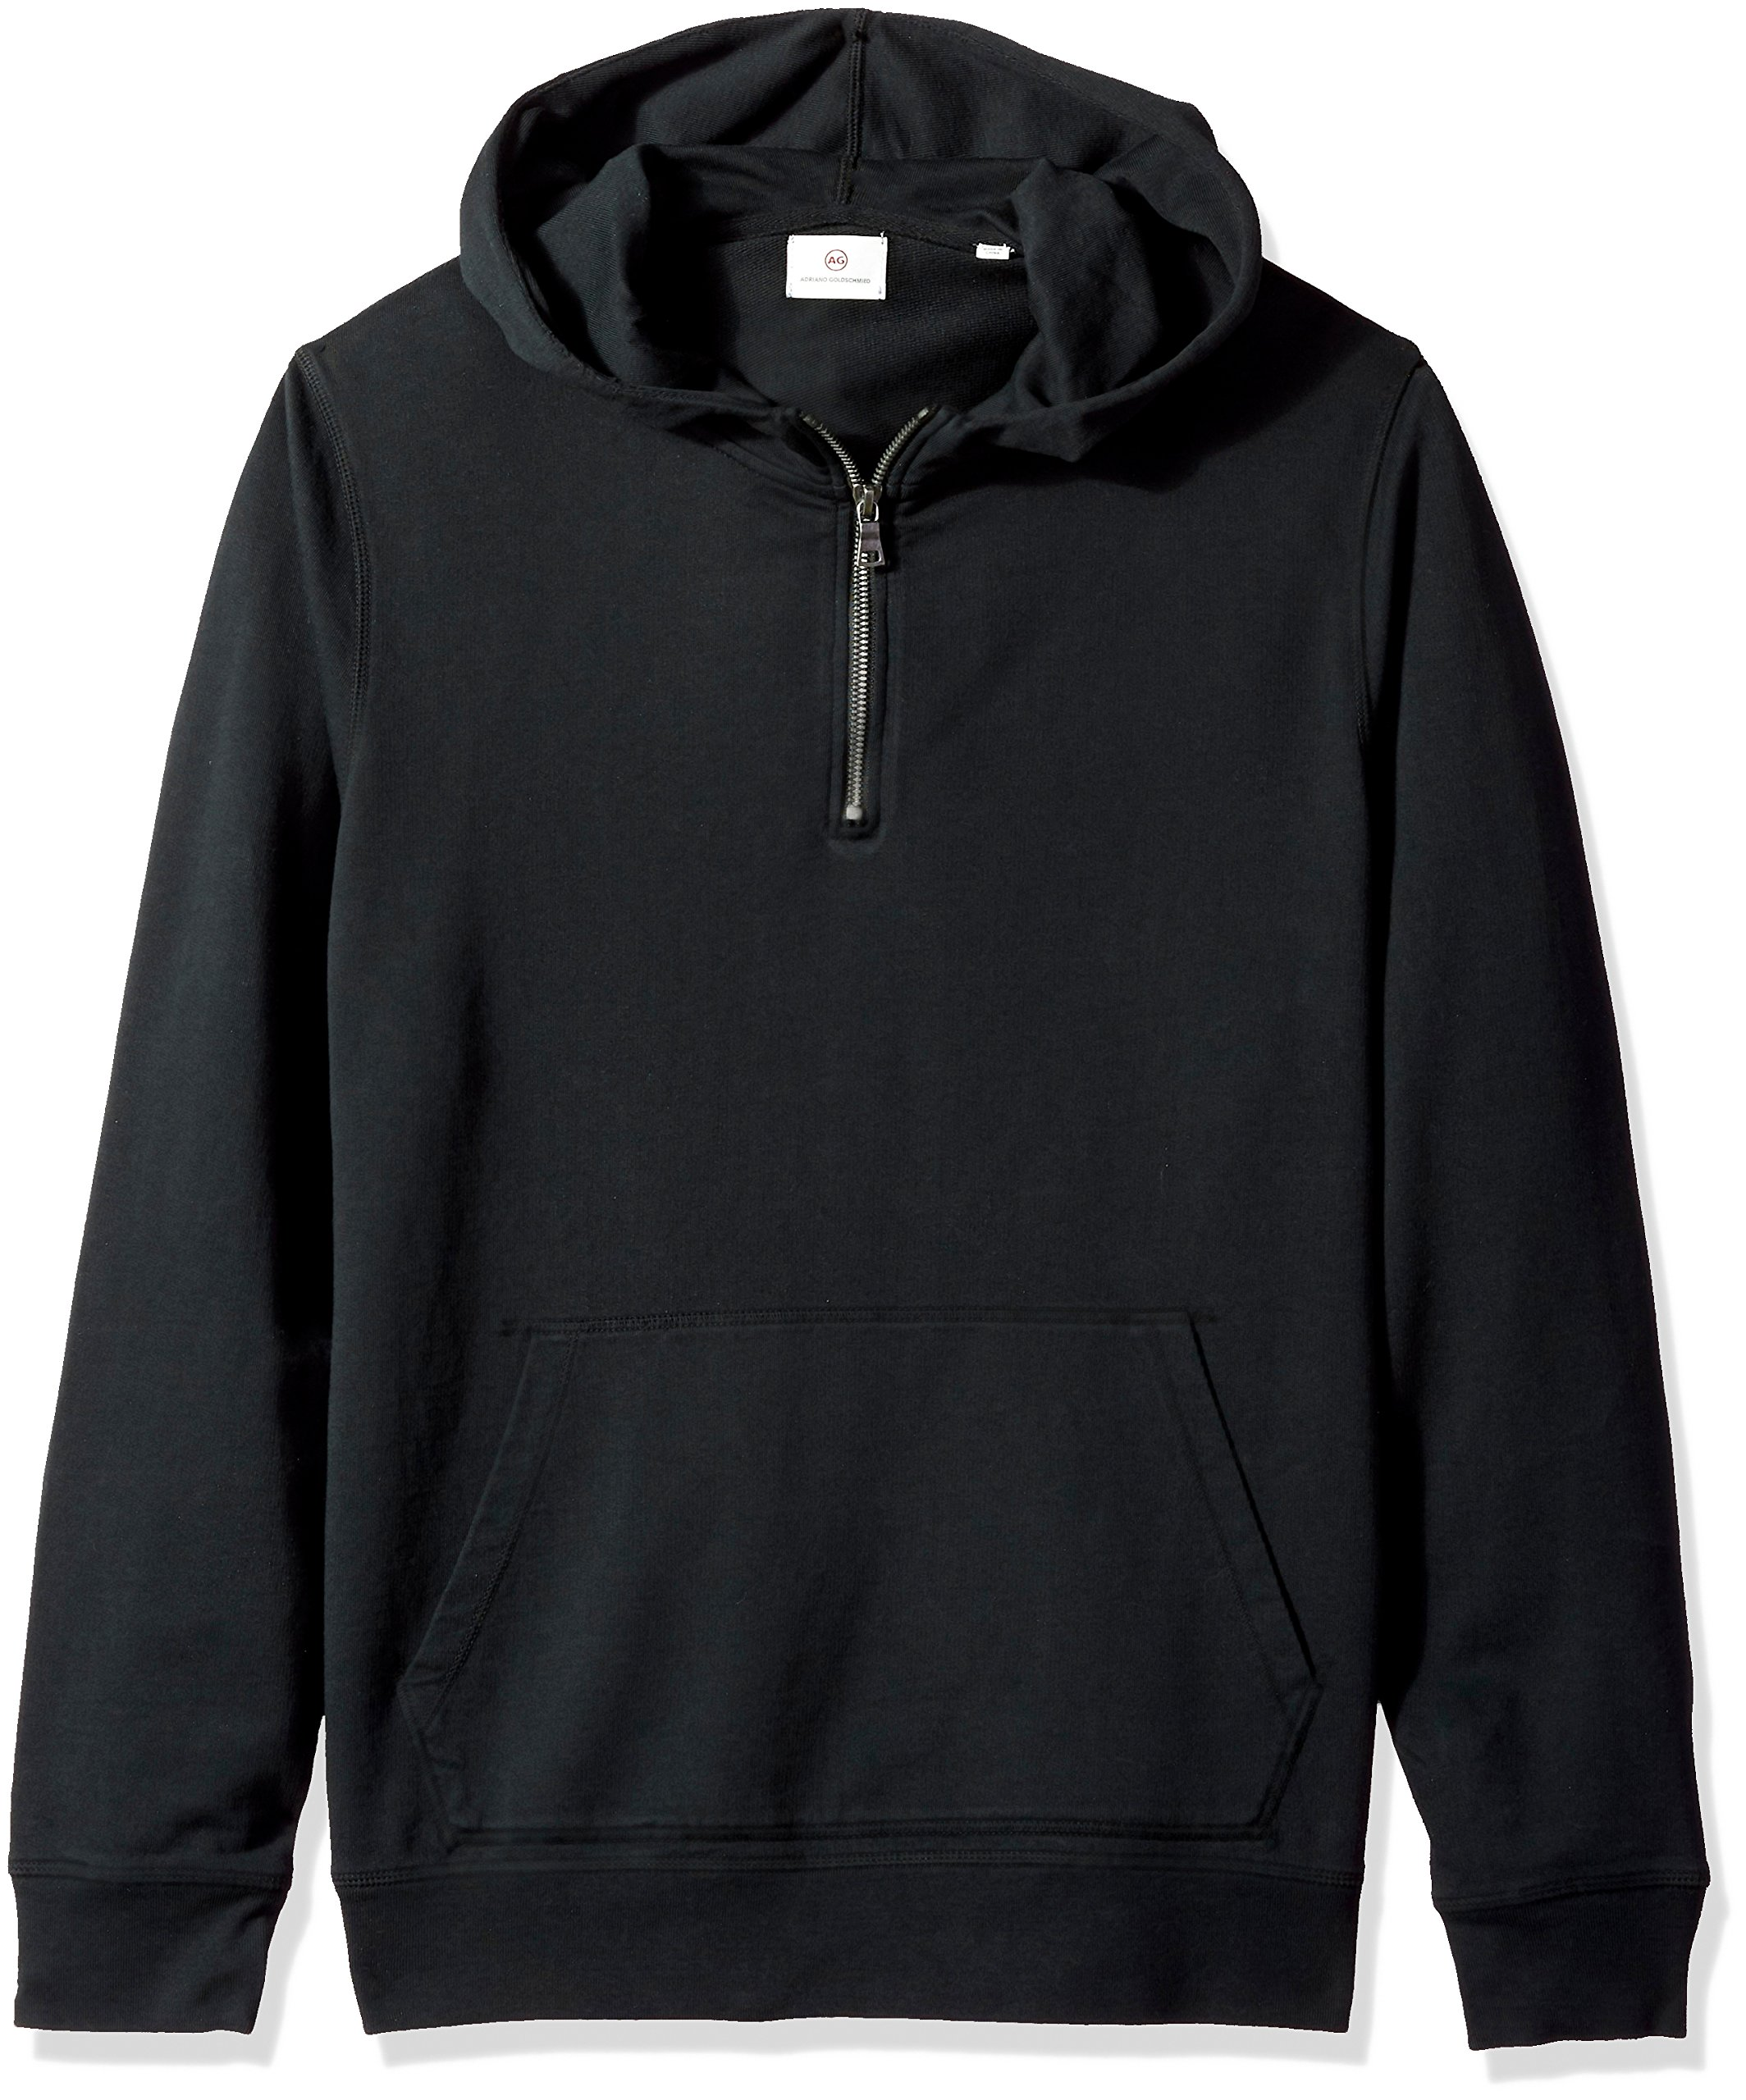 AG Adriano Goldschmied Men's Lyle Quarter Zip Pullover Hoodie, True Black XL